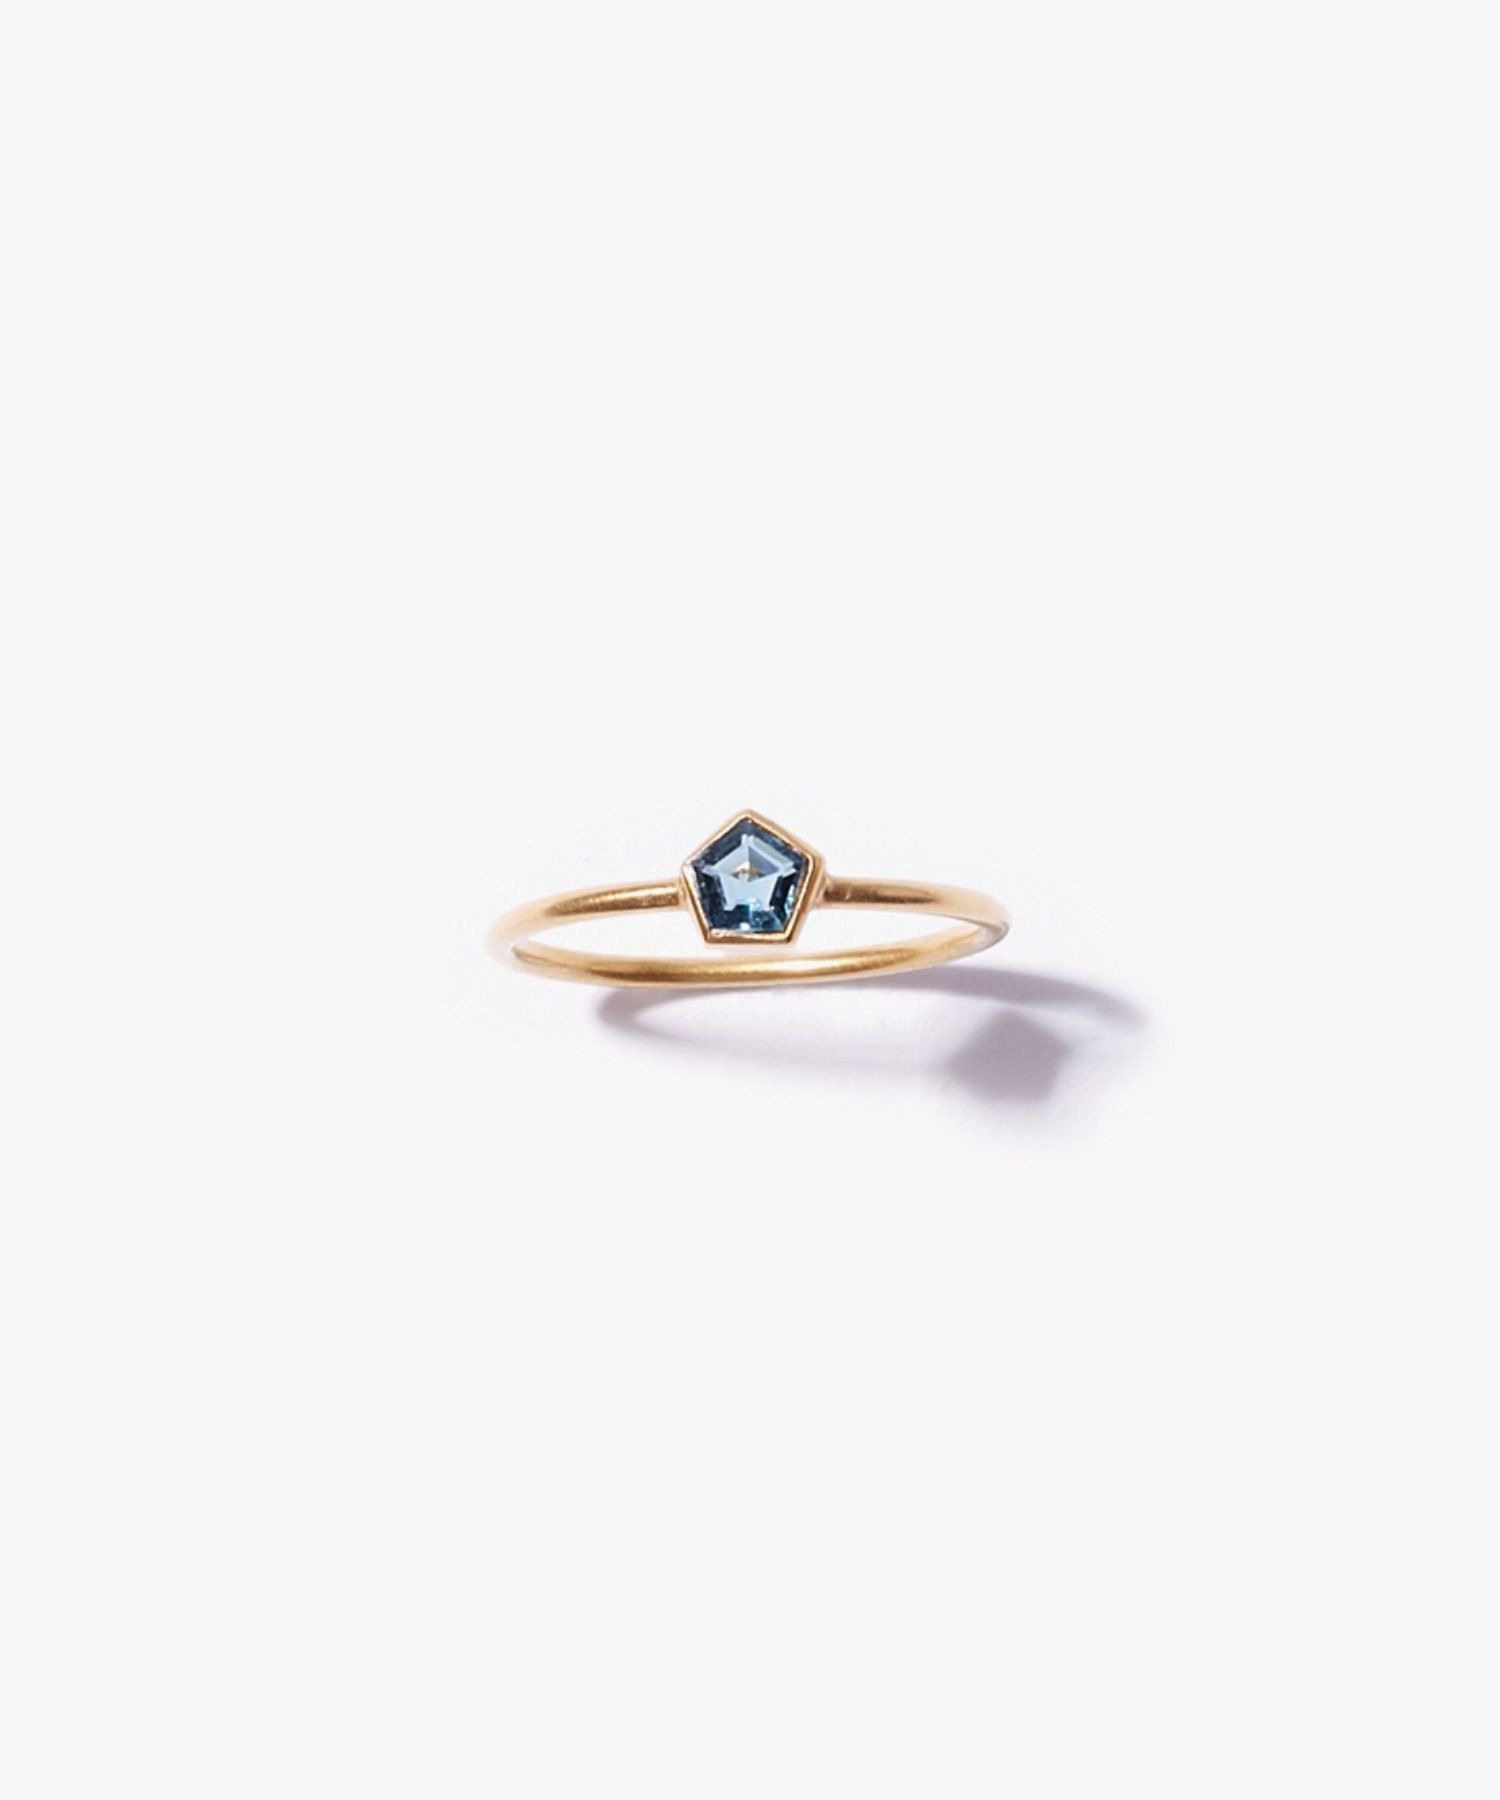 [eden] K10 pentagon london blue topaz ring